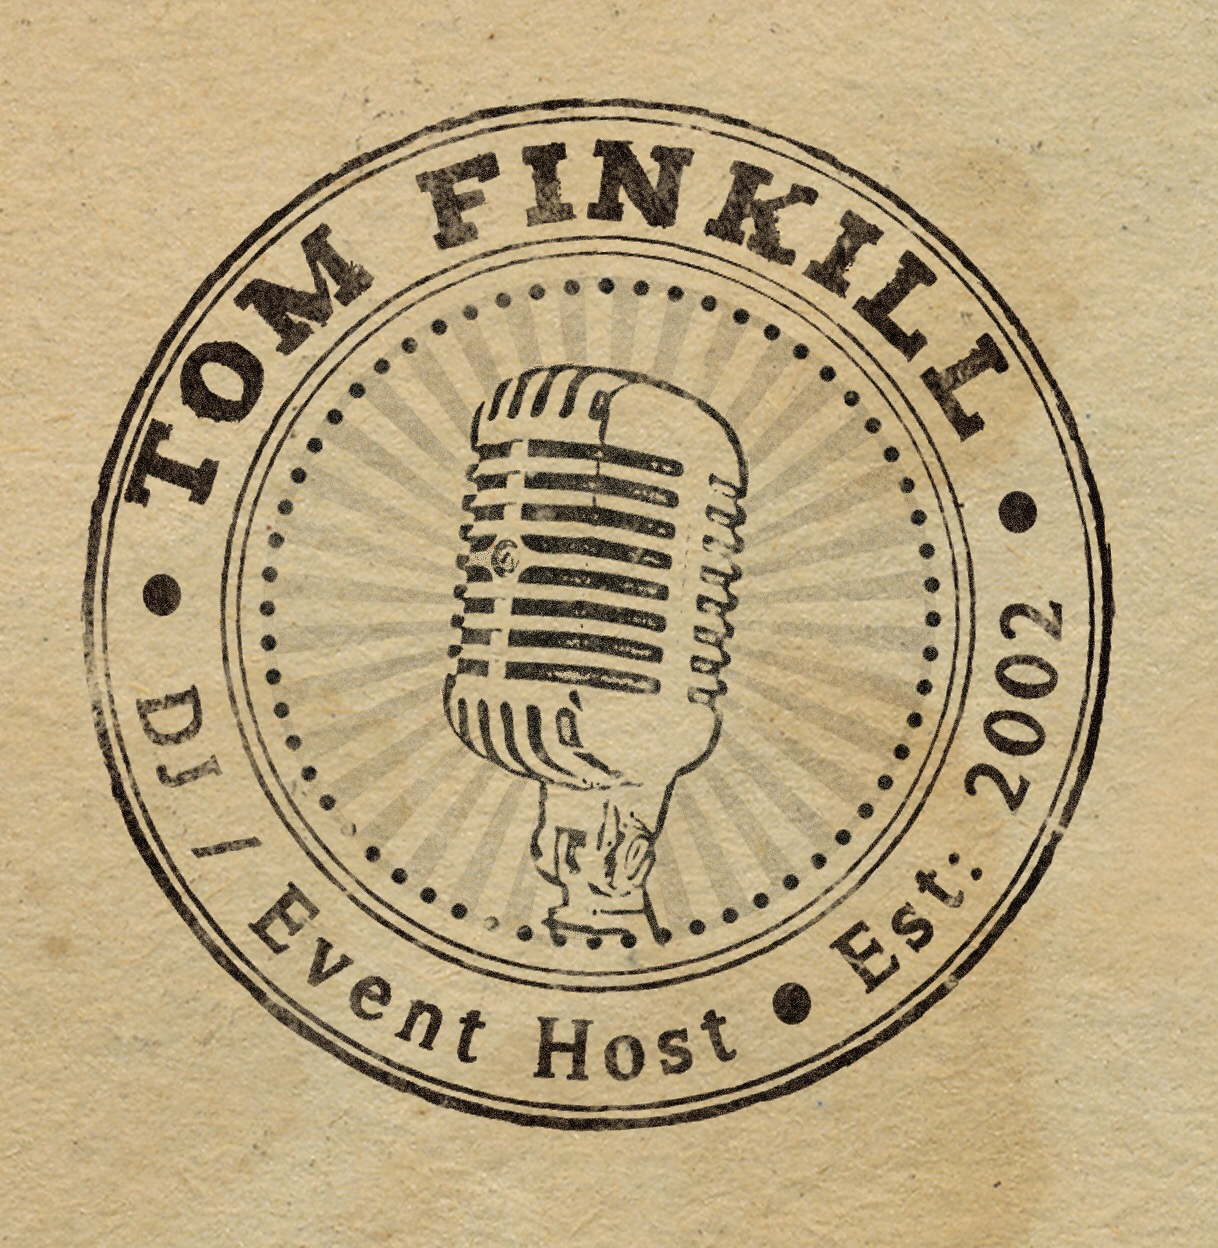 DJ Tom Finkill